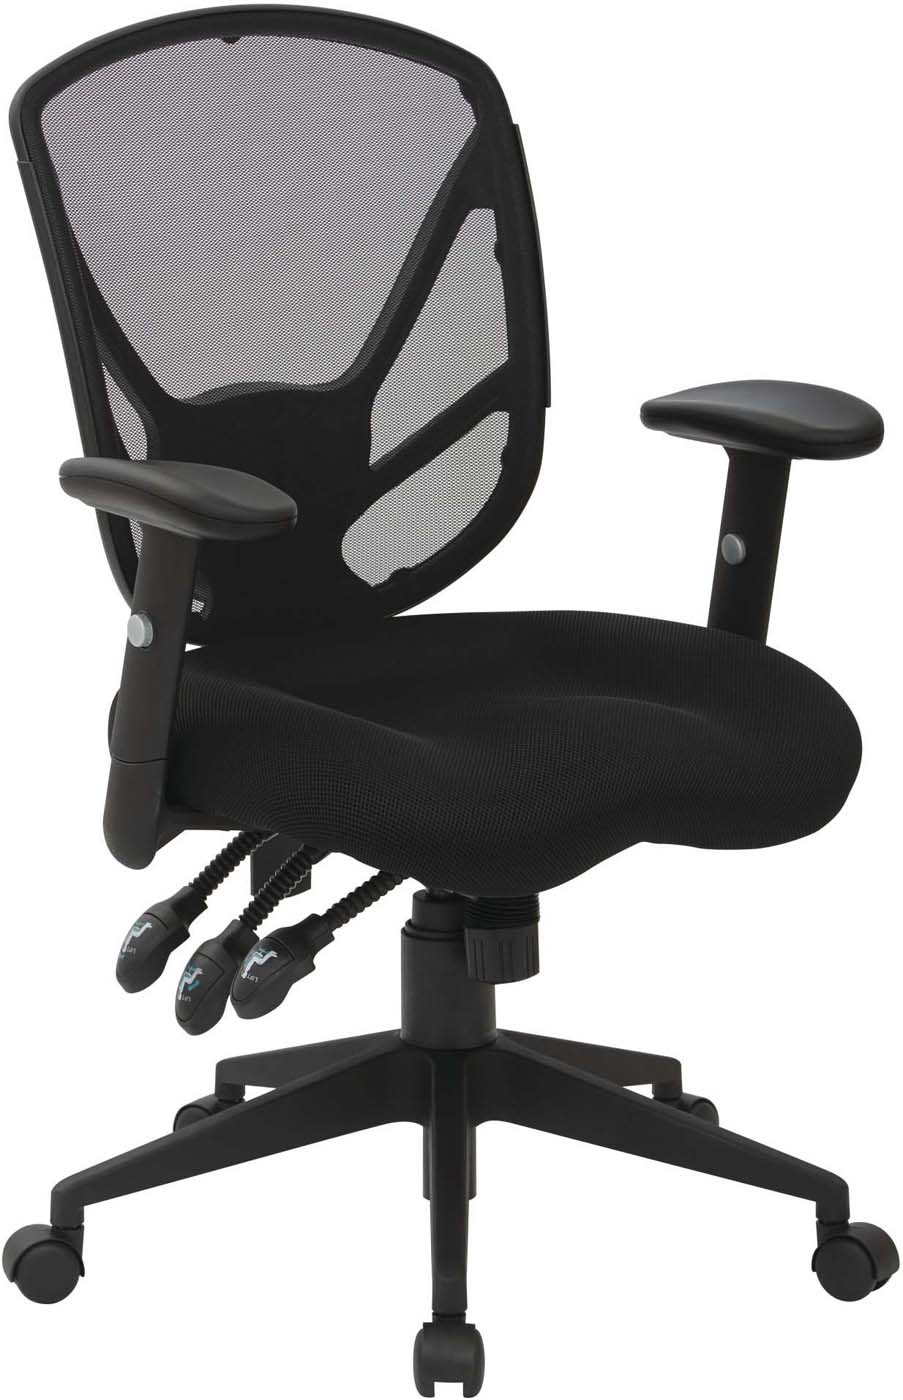 Saddle Office Chair Work Smart Black Office Chair Saddle Seat Spx2723rnb 3